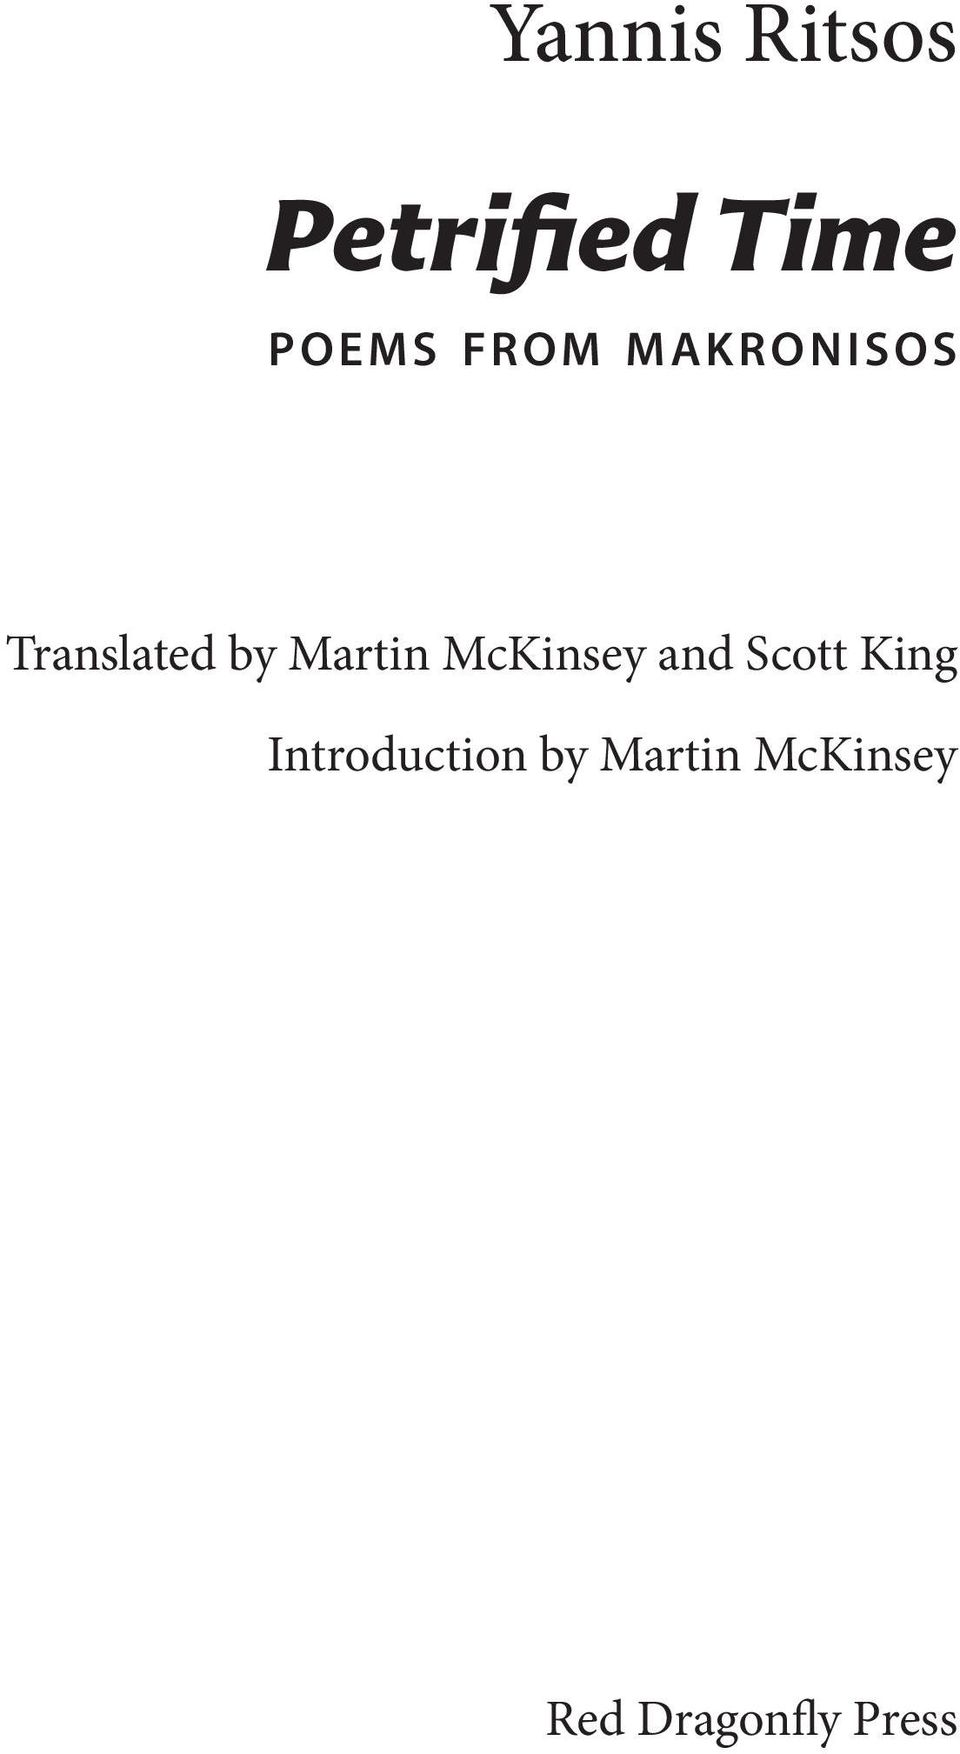 Martin McKinsey and Scott King